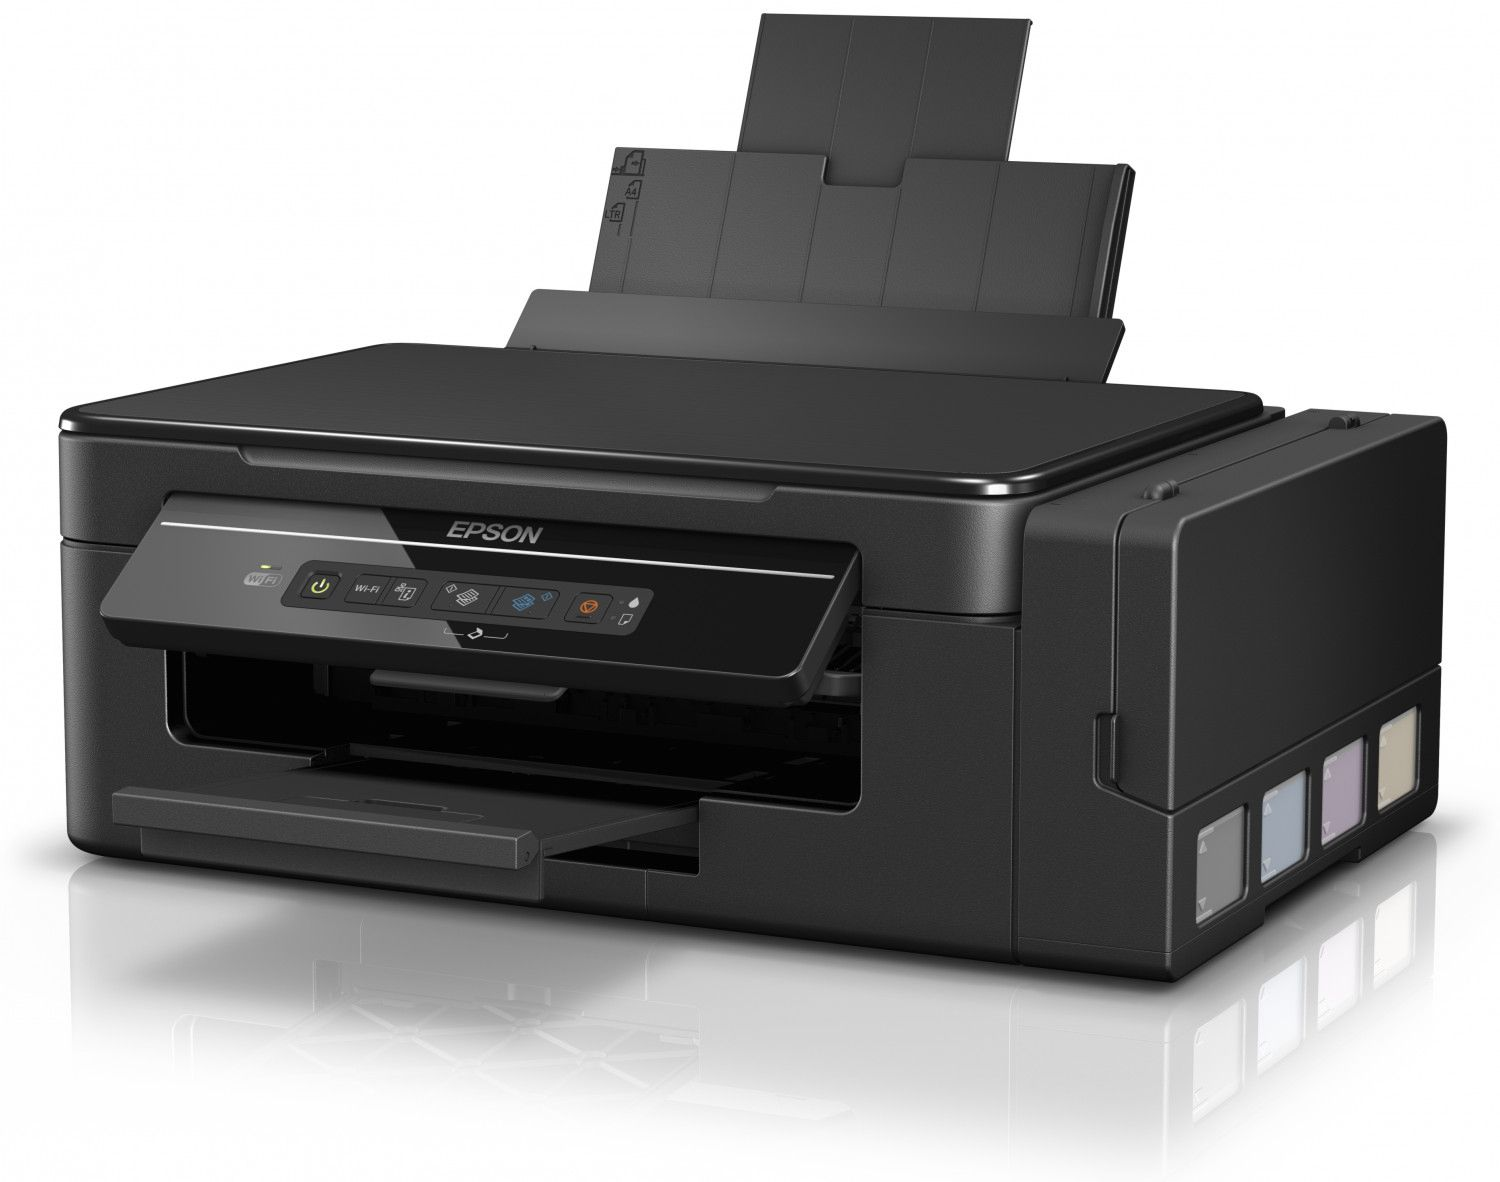 Epson EcoTank ET2600 Multifunction Inkjet Printer